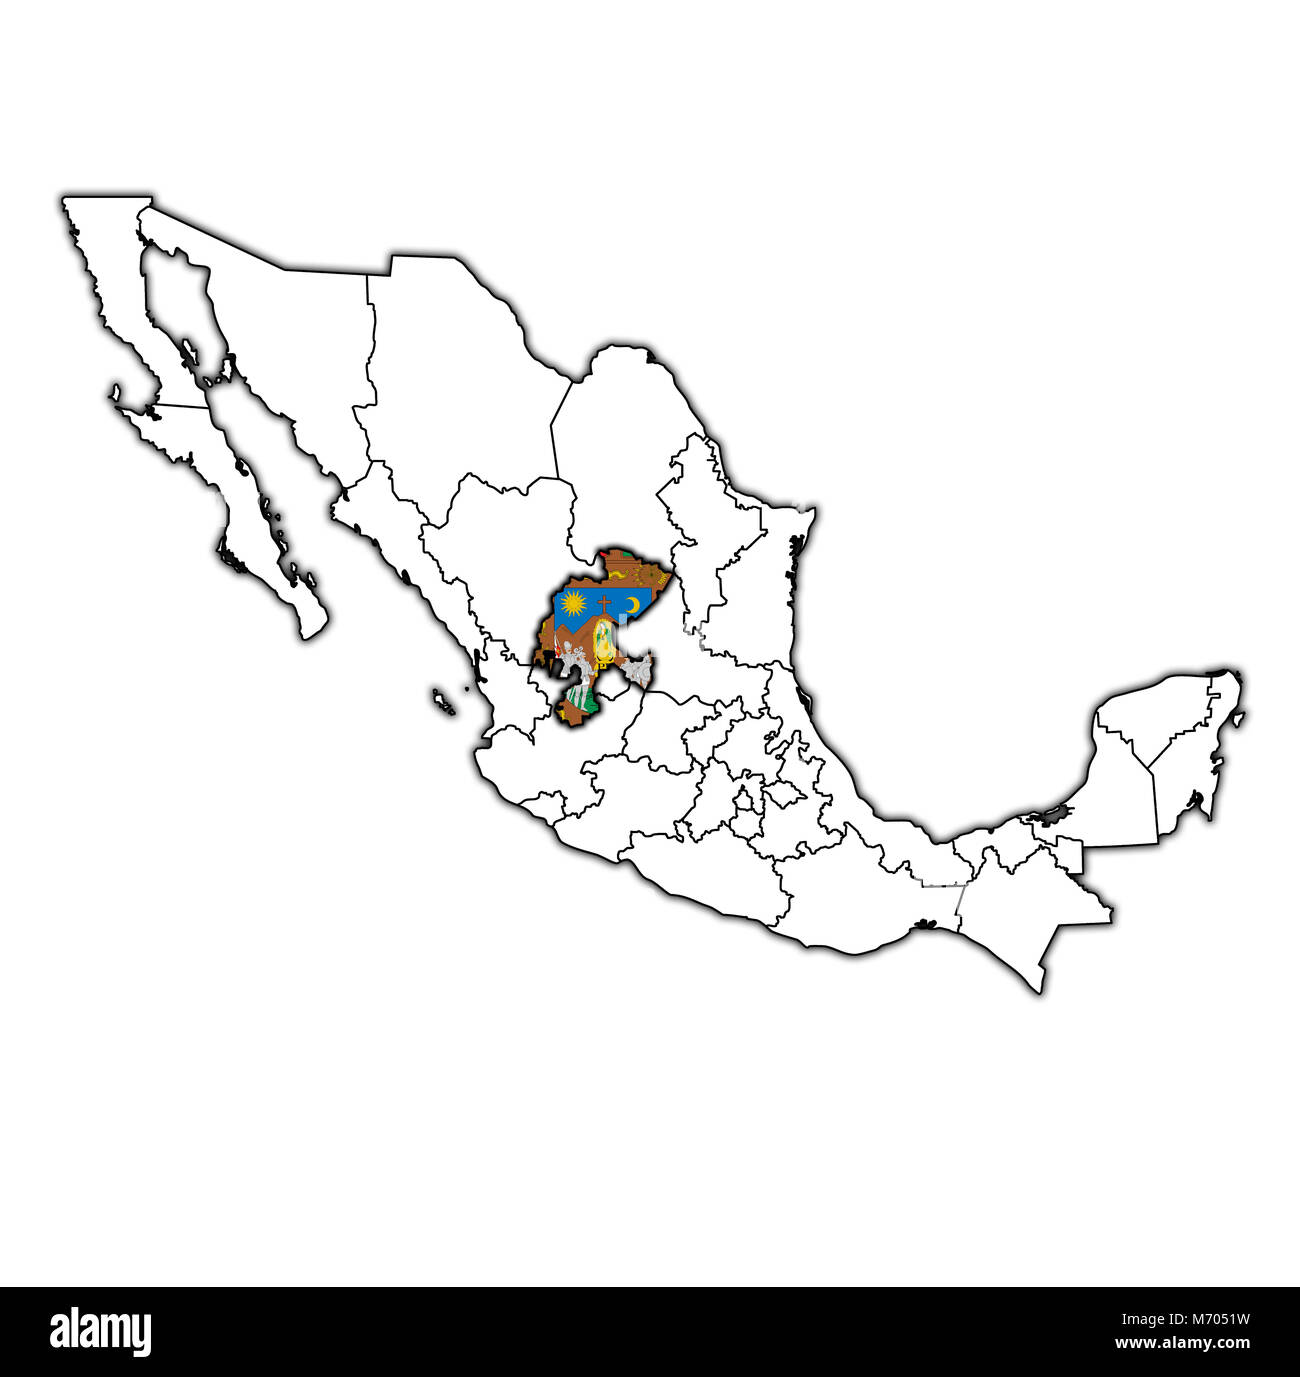 emblem of Zacatecas state on map with administrative divisions and